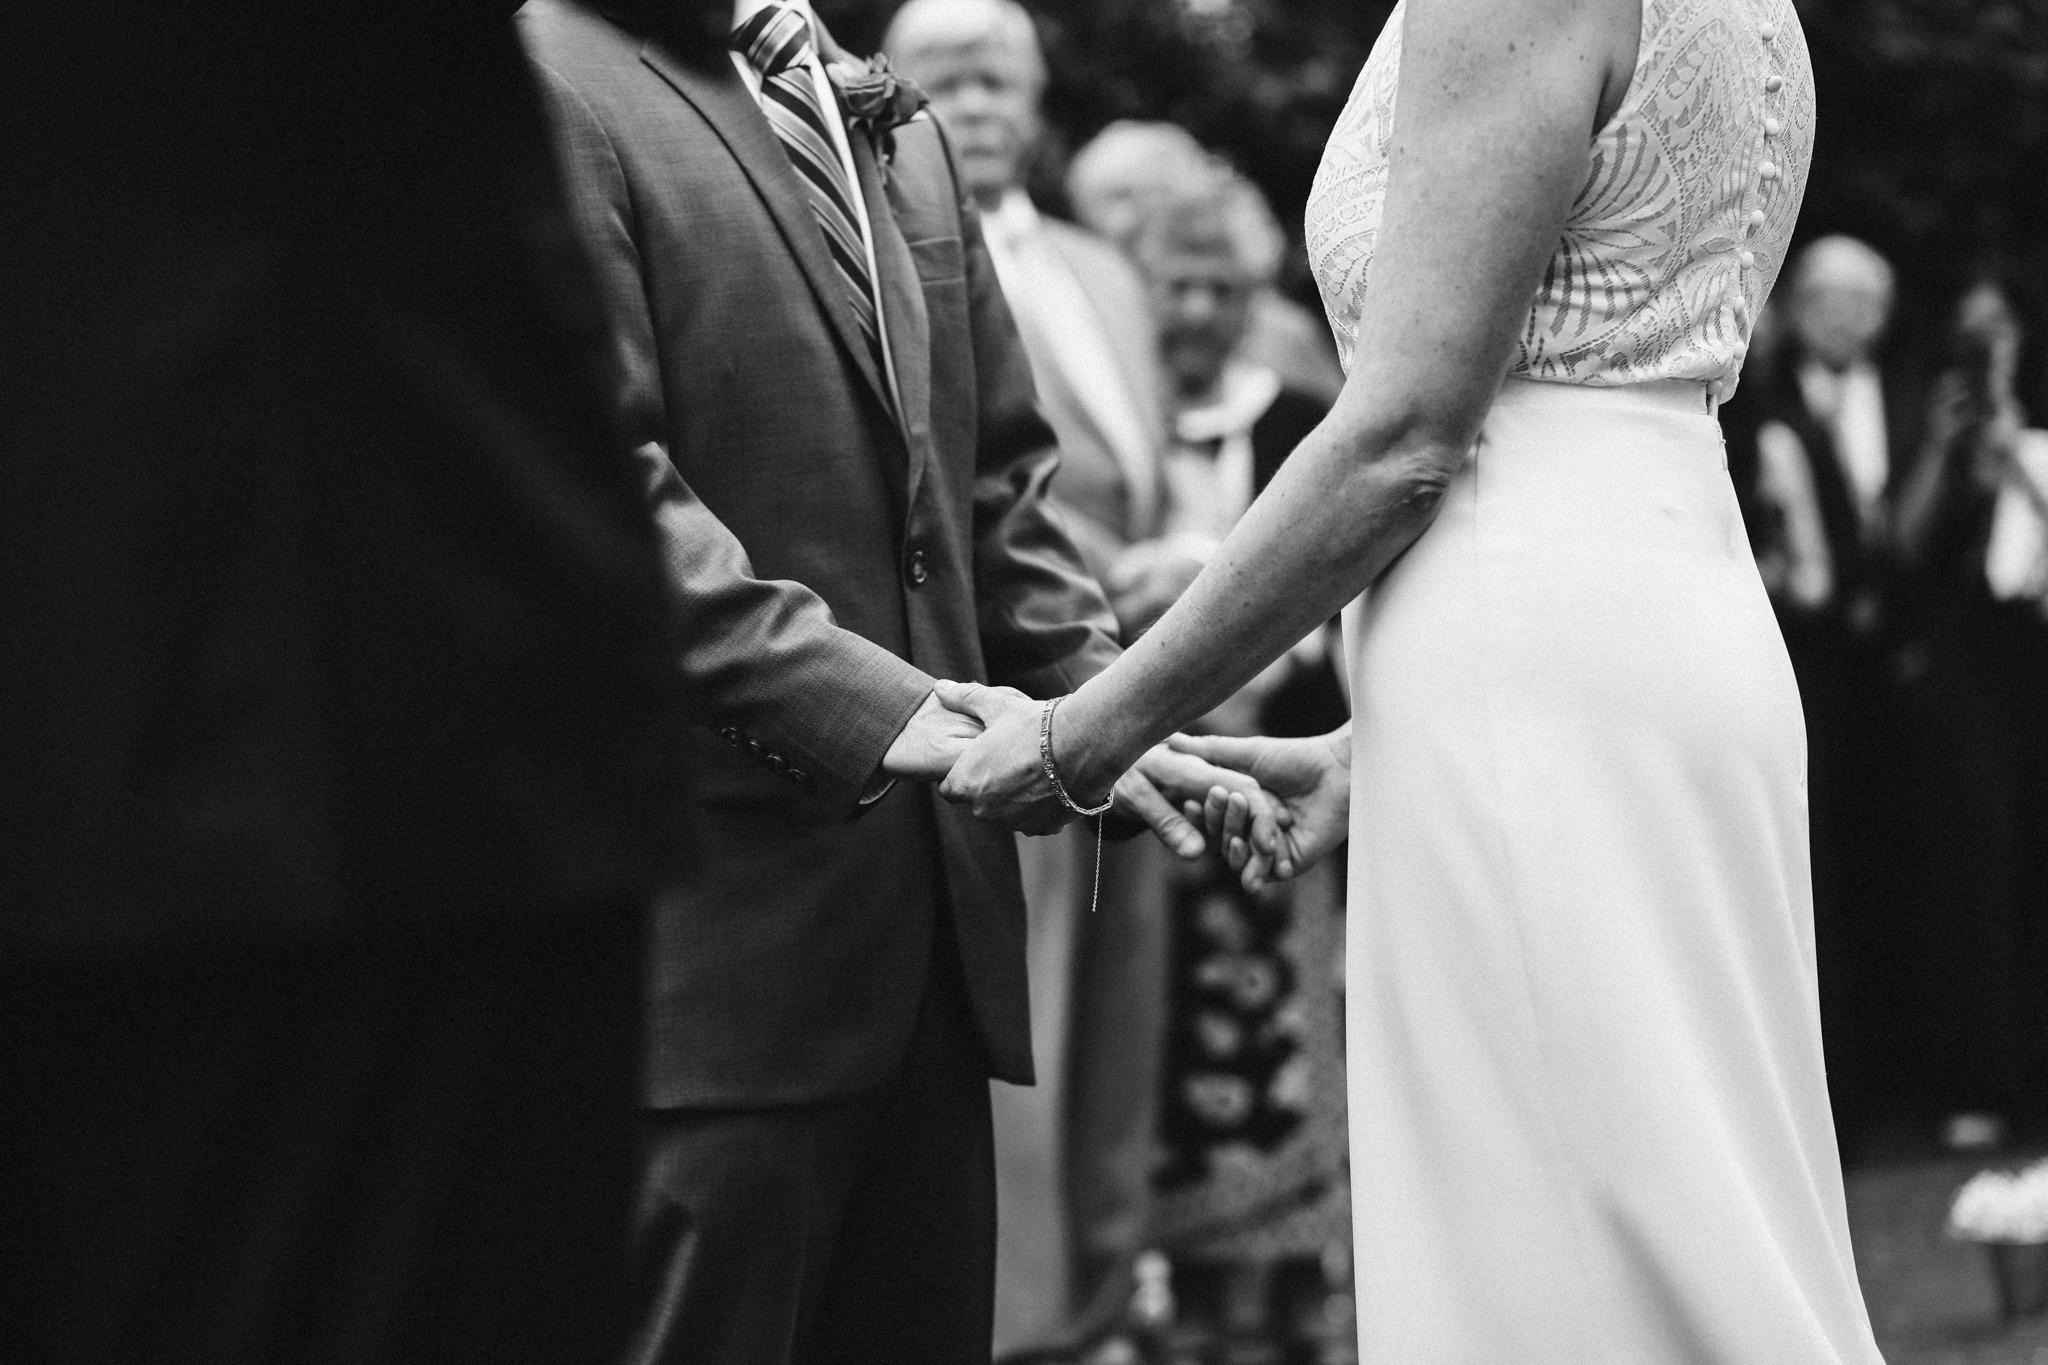 cook_wedding_richmond_virginia_rebecca_burt_photography-42.jpg